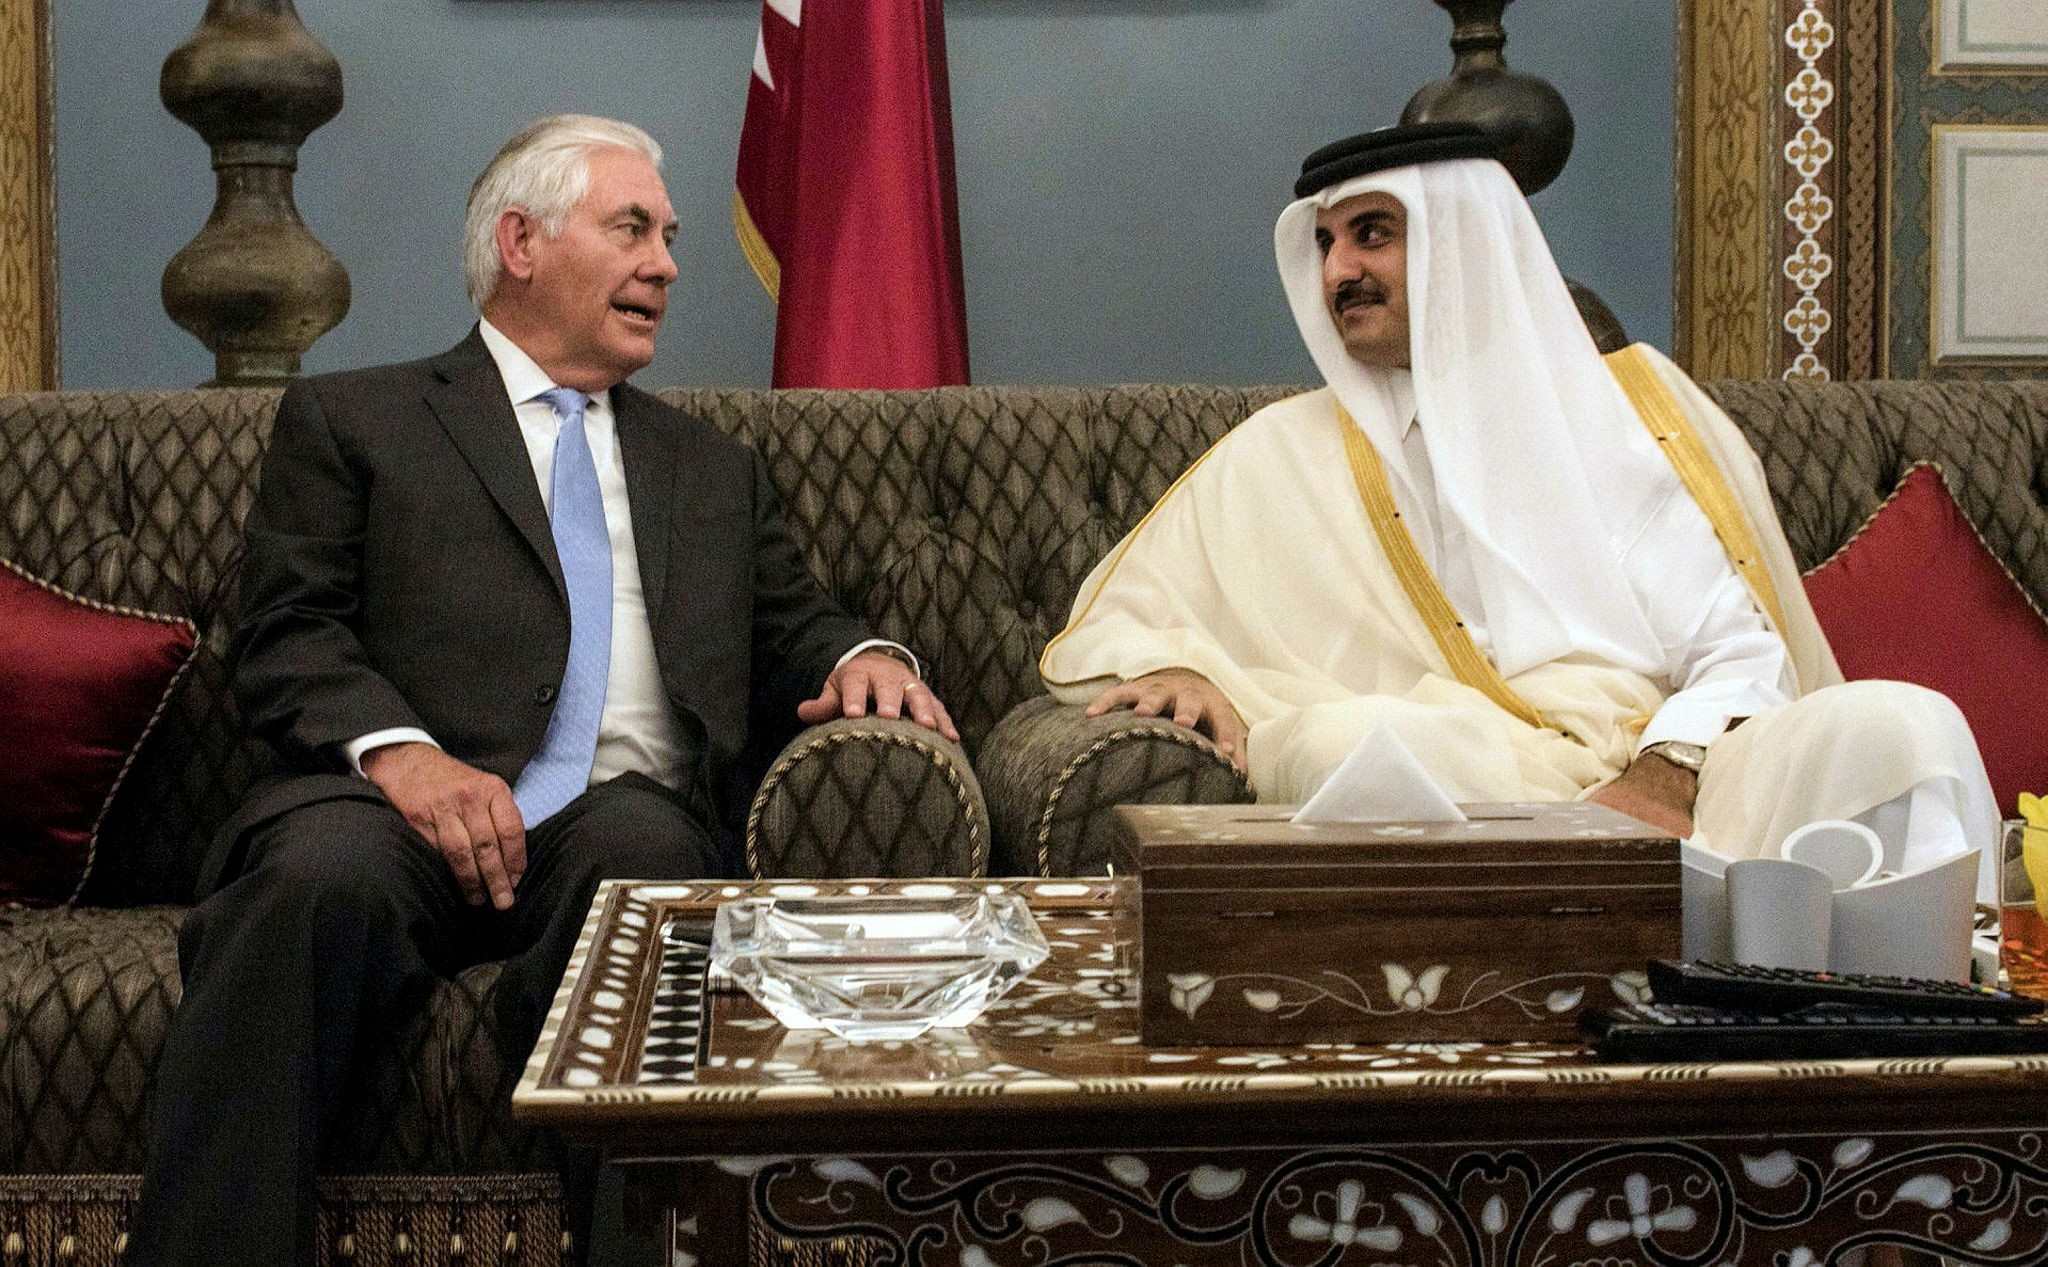 US Secretary of State Rex Tillerson (L) meeting with Qatar's Emir Sheikh Tamim bin Hamad Al-Thani on July 11, 2017 at the Prince's Sea Palace residence in the capital Doha (AFP PHOTO)